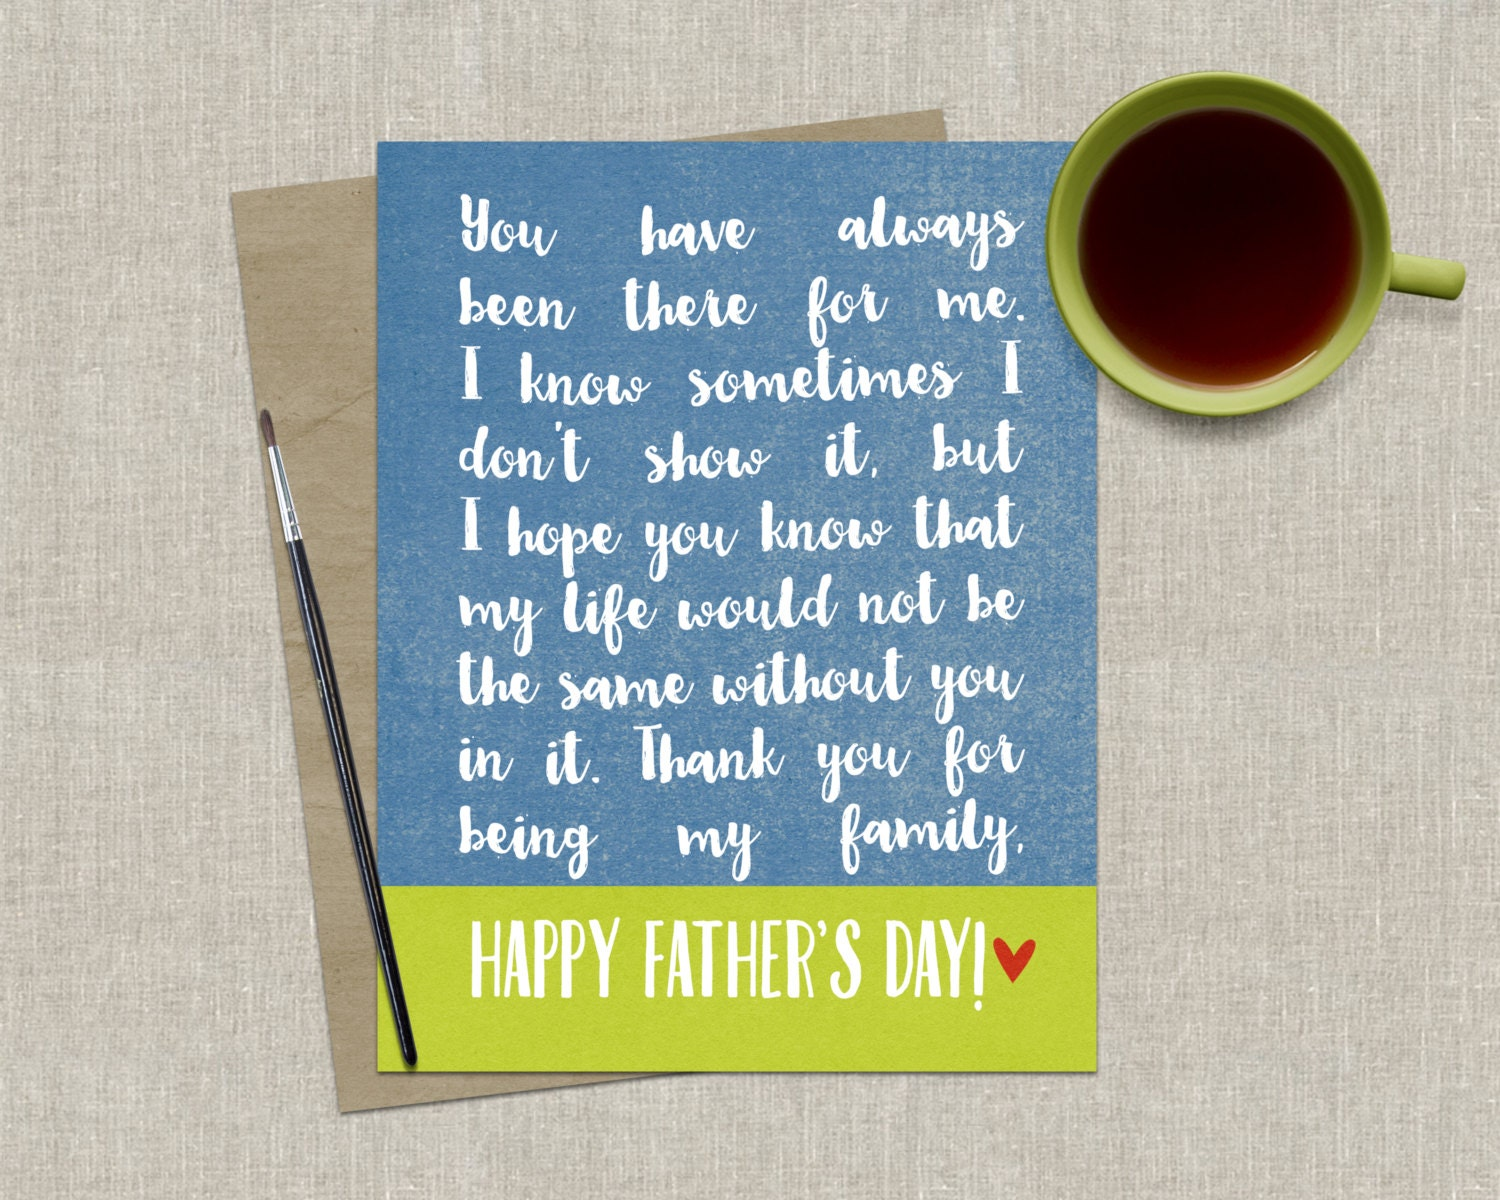 Awesome fathers day card heartfelt fathers day zoom kristyandbryce Gallery